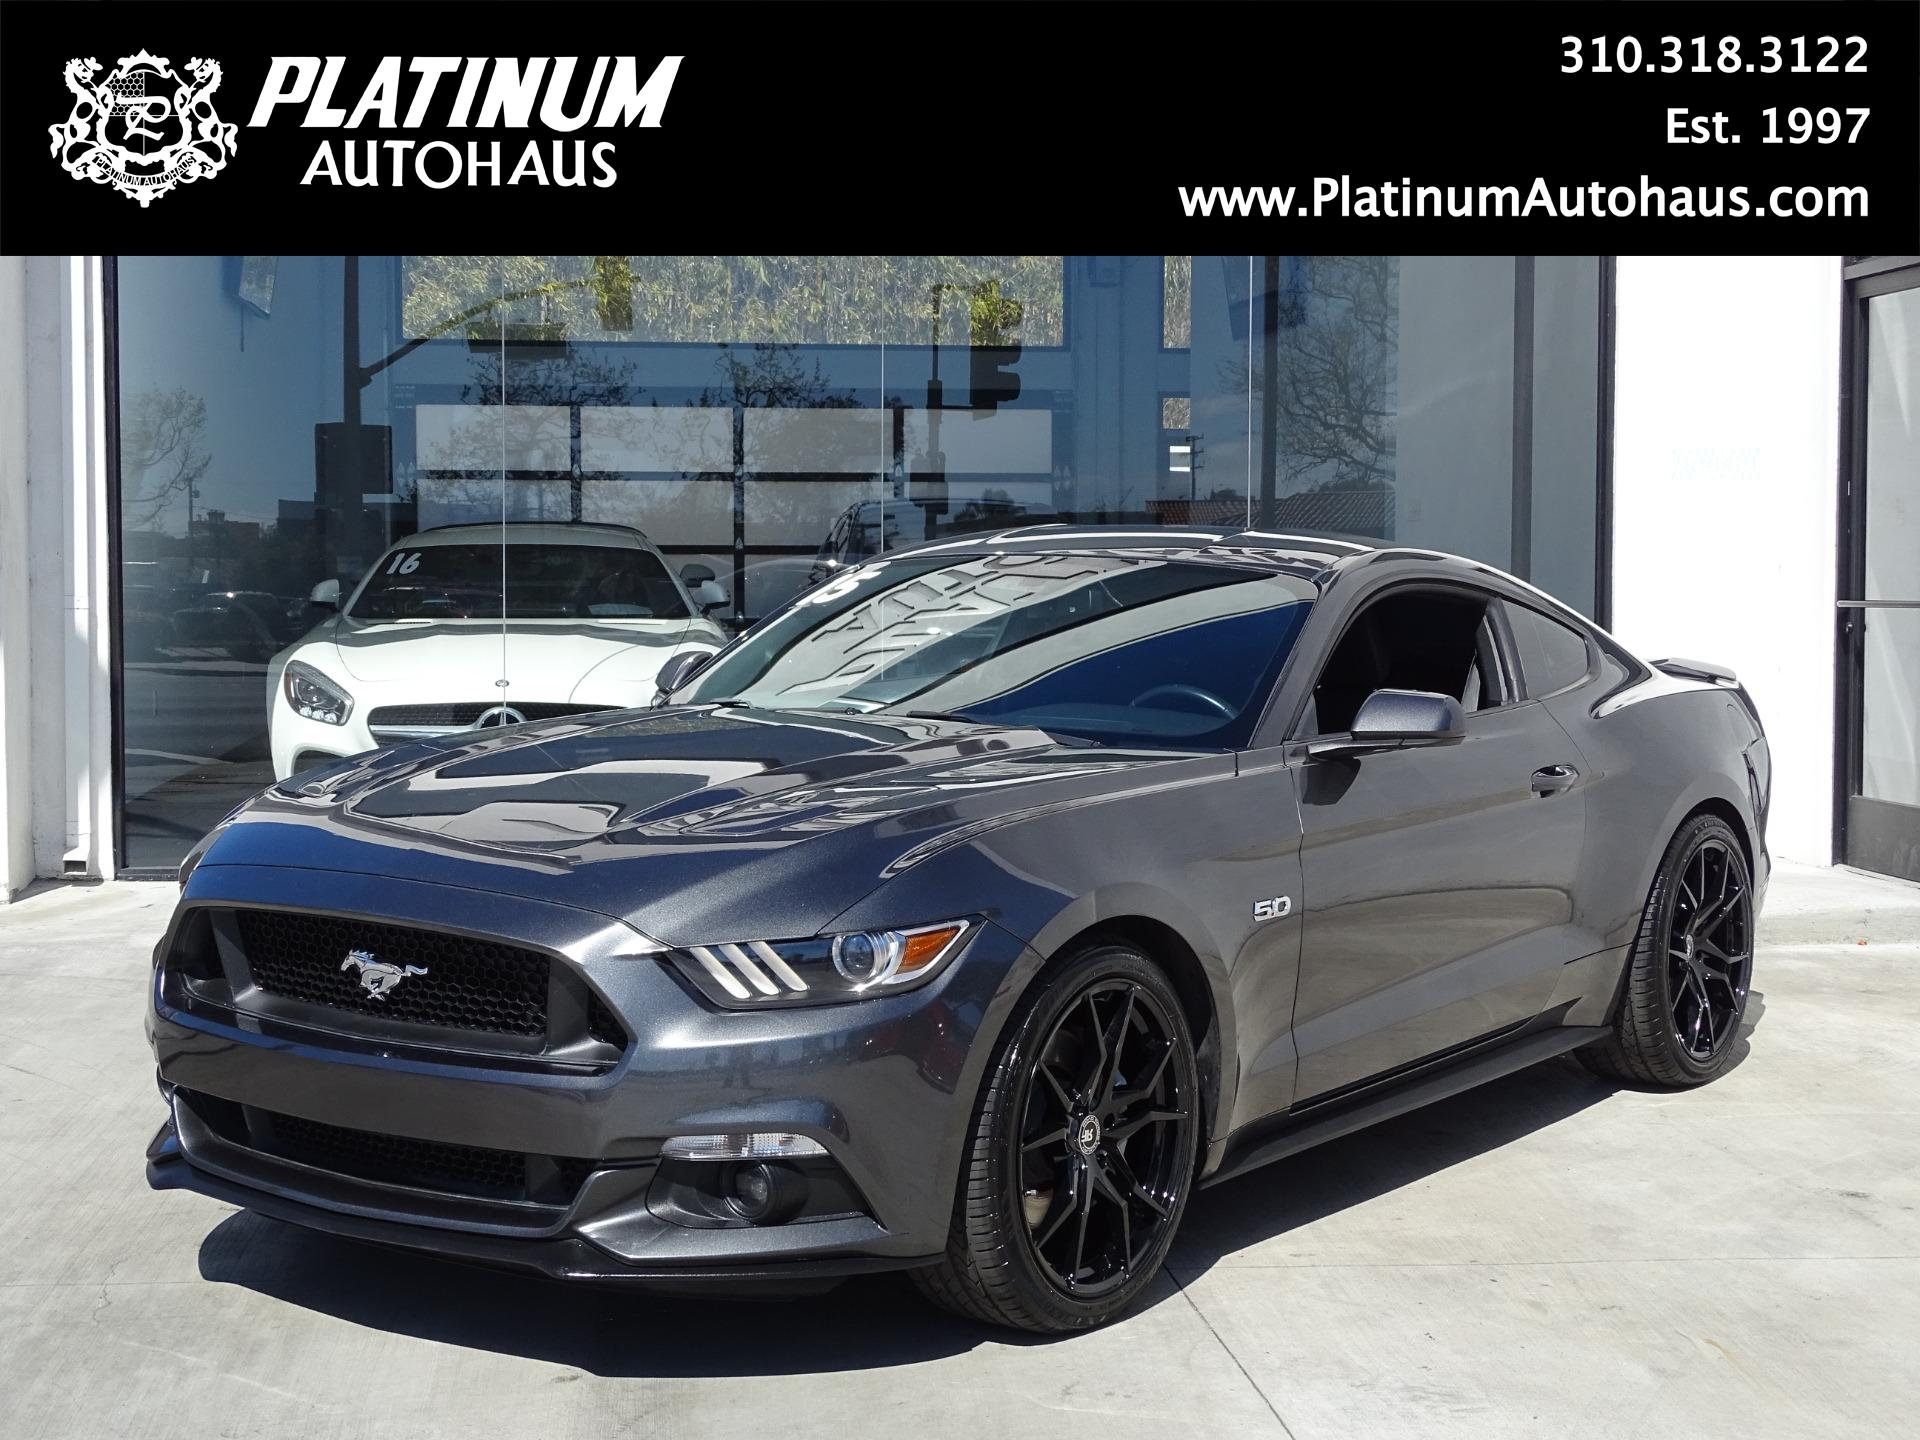 2015 Ford Mustang Gt For Sale >> 2015 Ford Mustang Gt Premium Stock 6425a For Sale Near